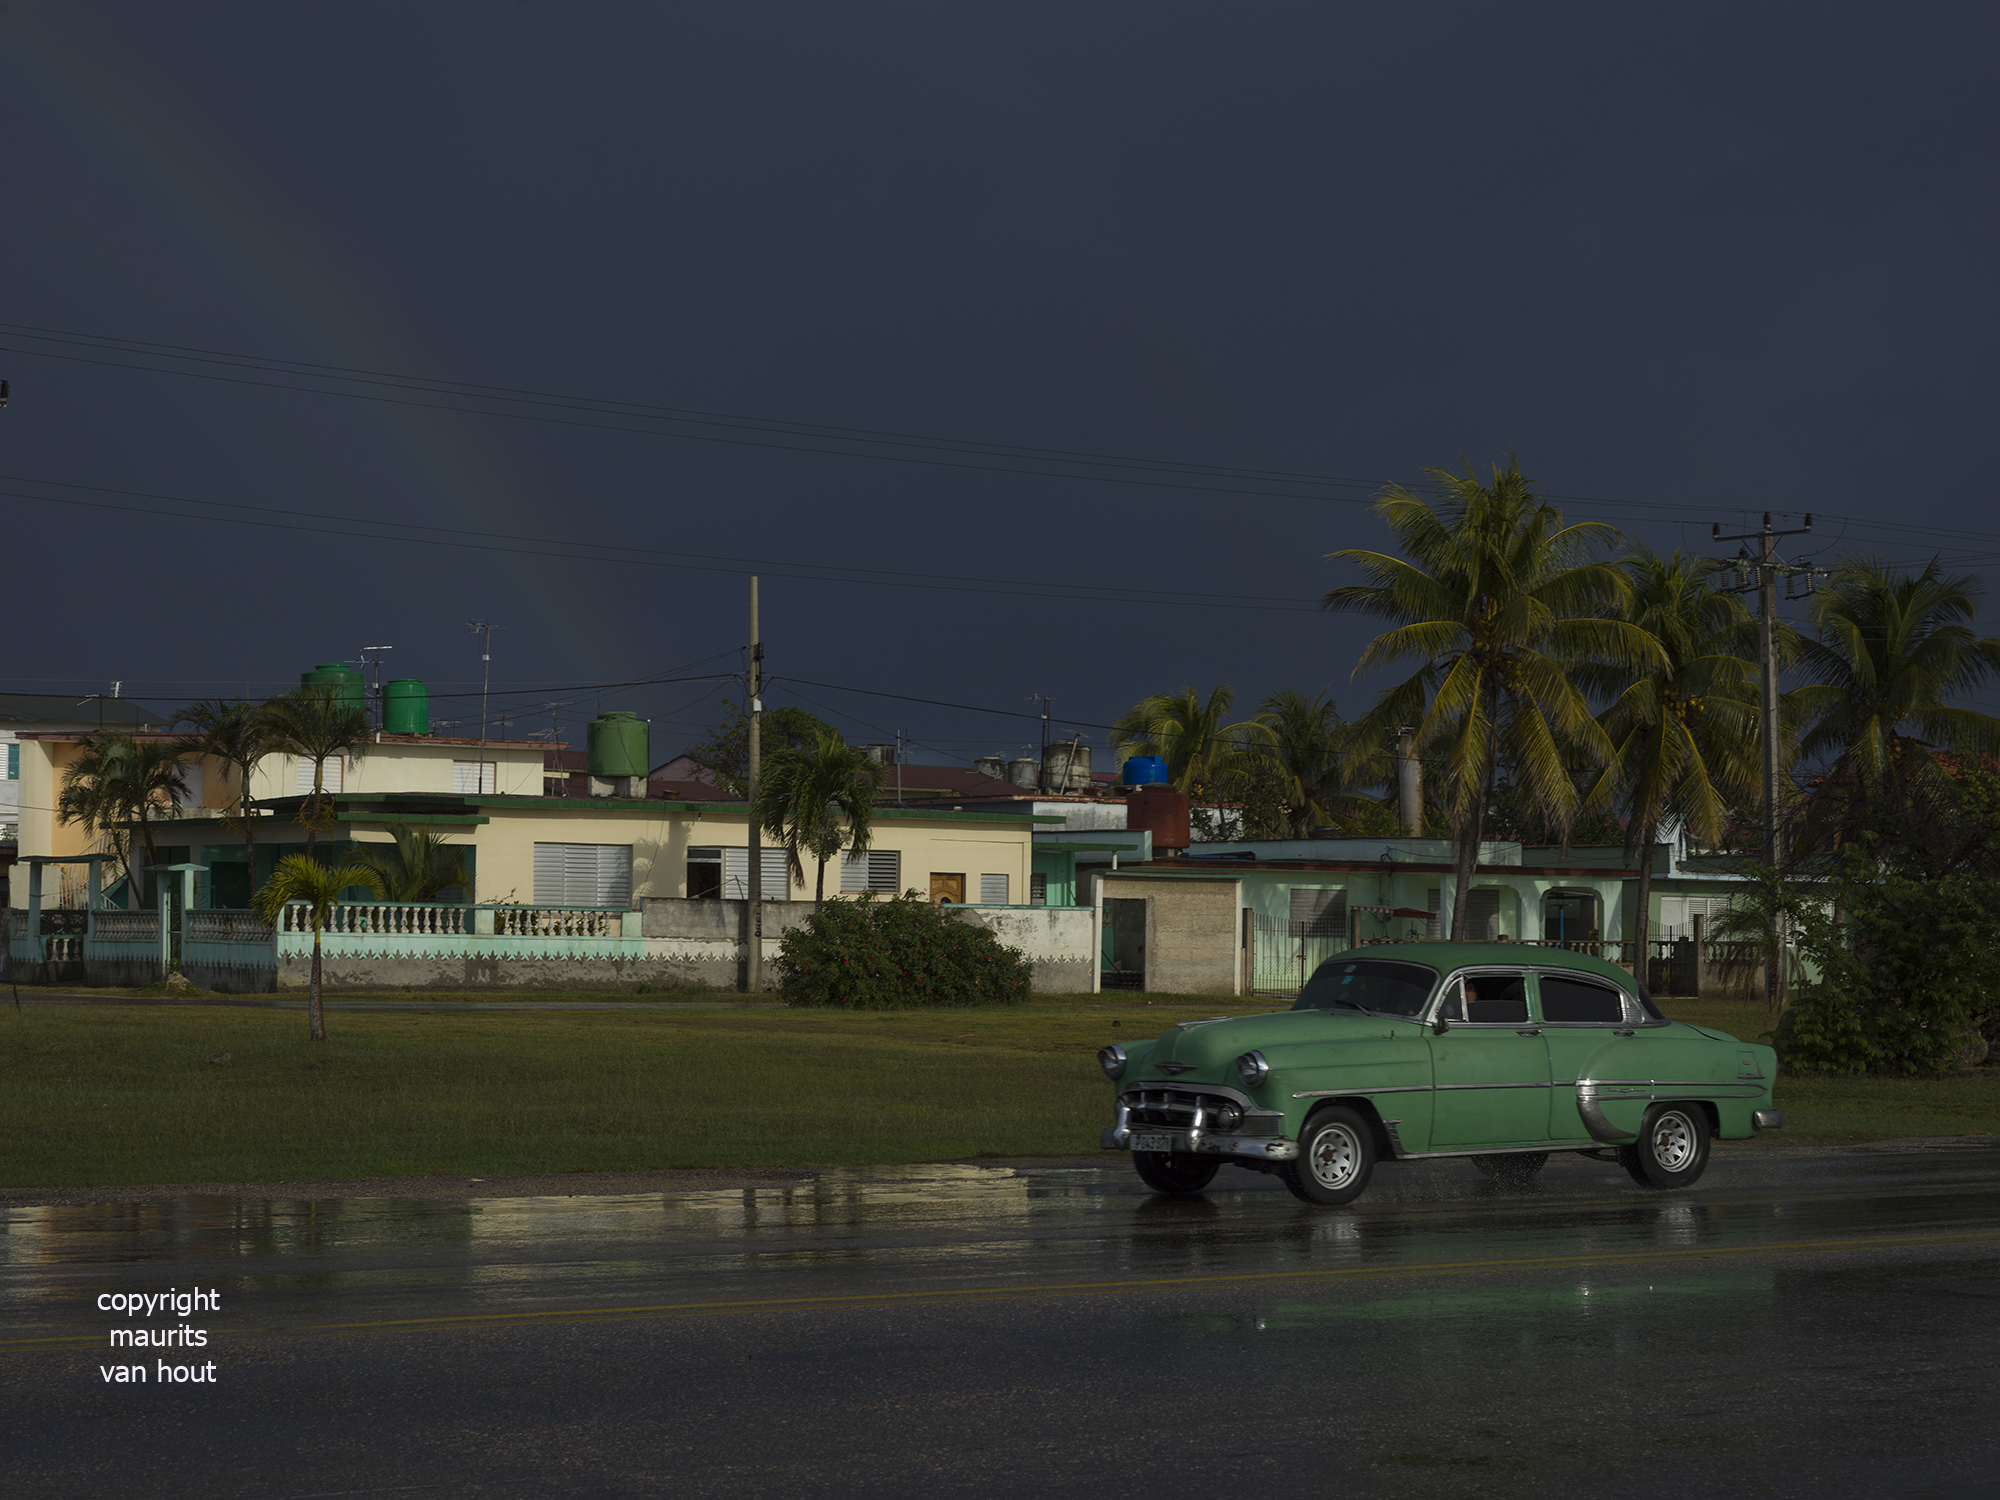 Cuba, classic car by photographer maurits van hout